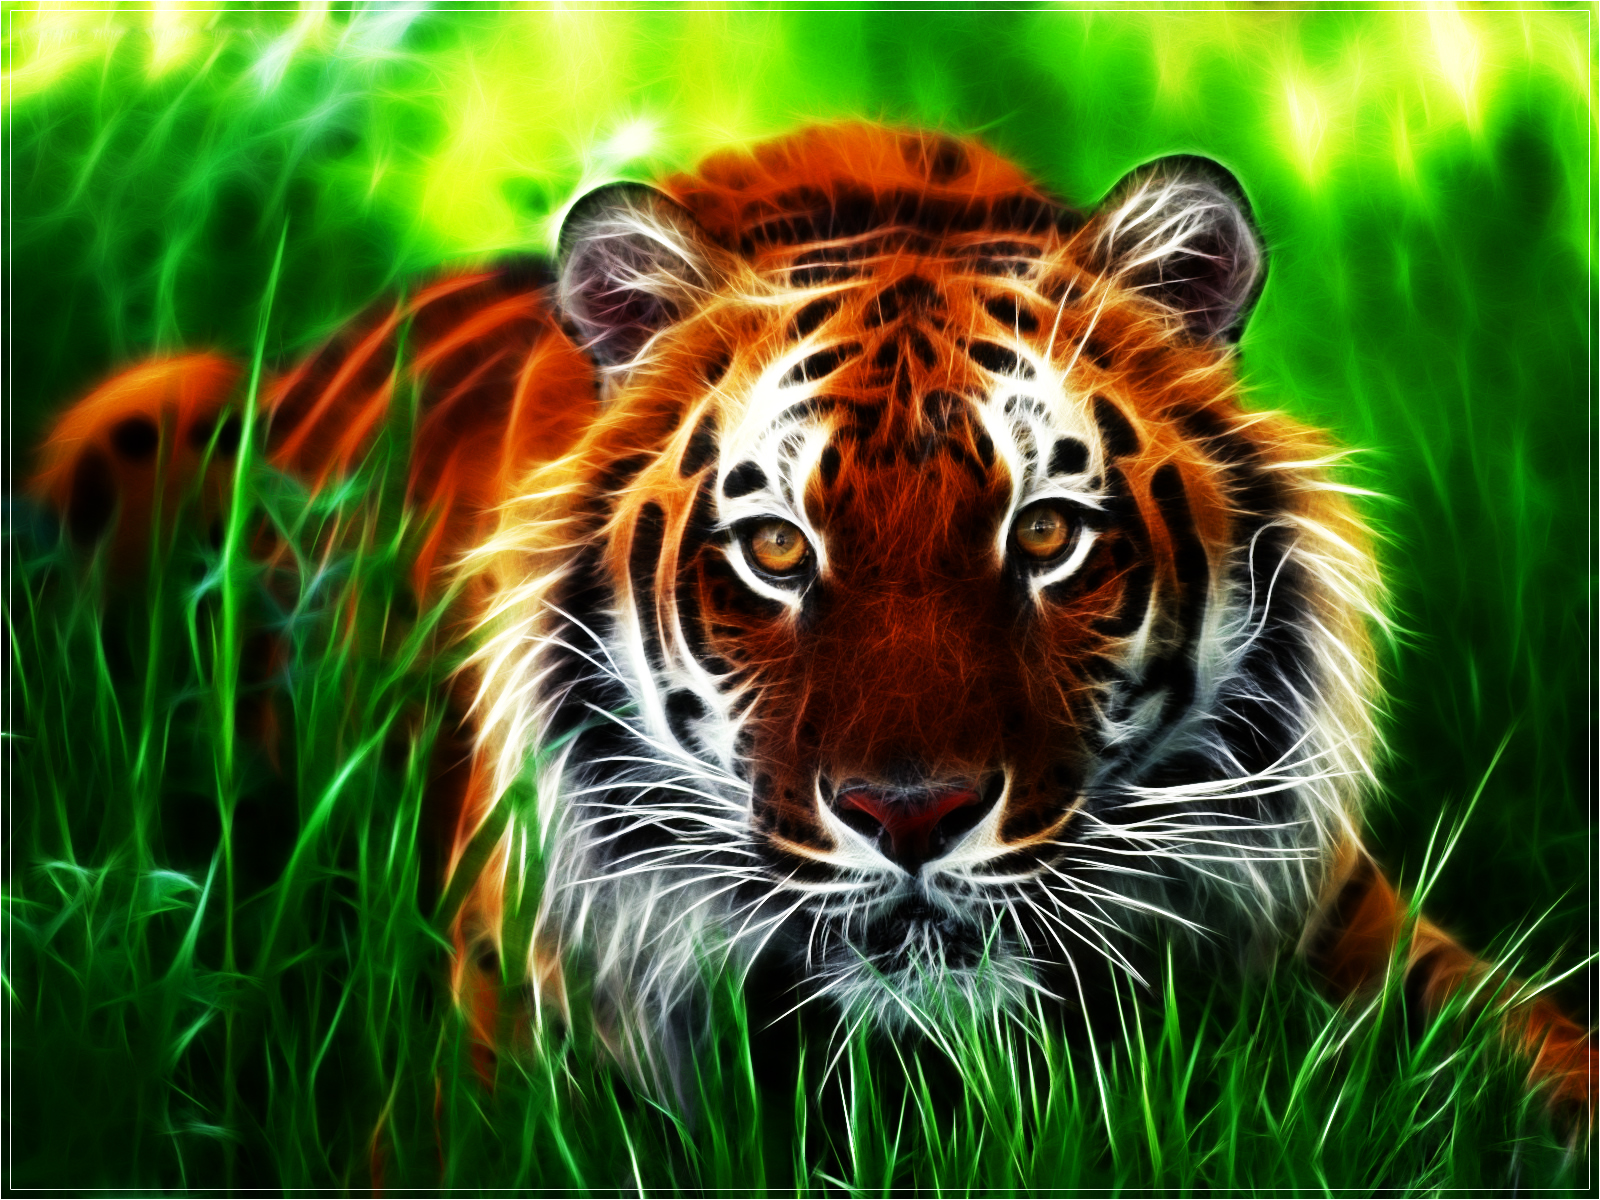 1000+ ideas about Tiger Wallpaper on Pinterest | Tigers, Nature